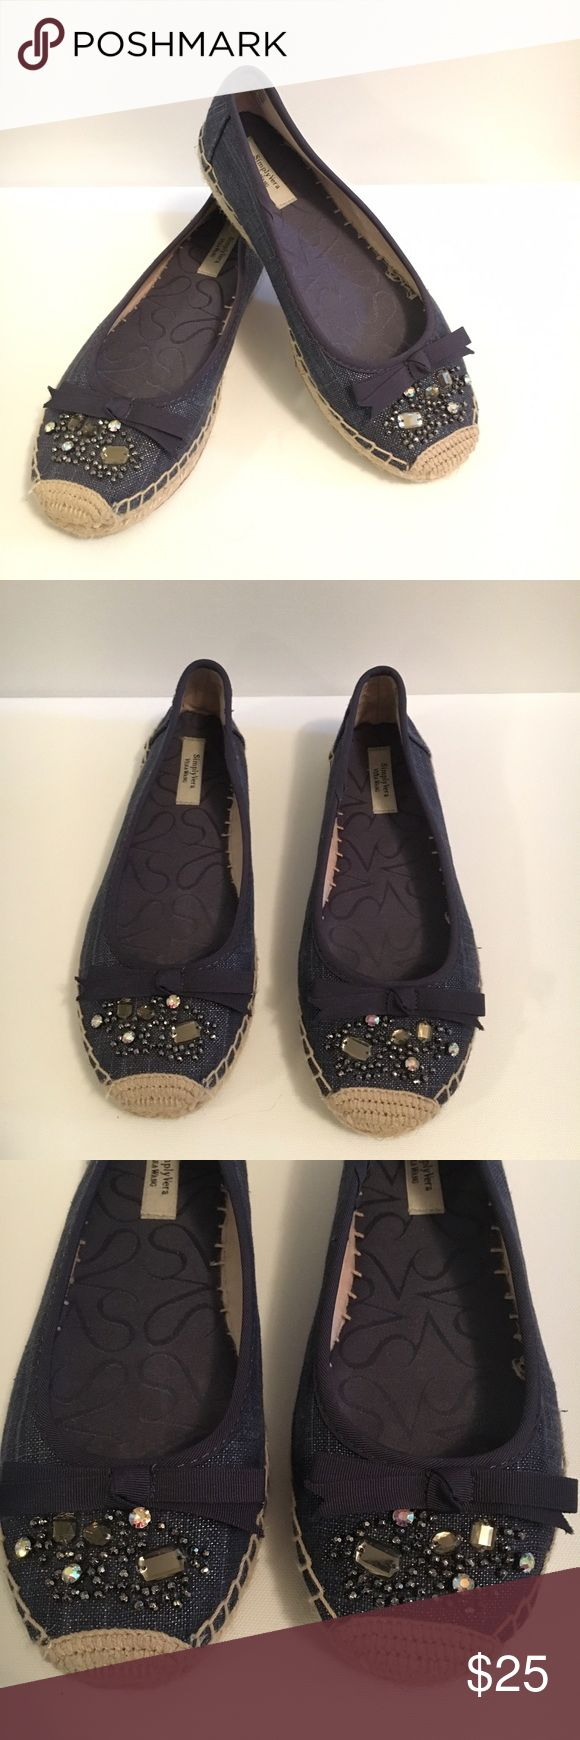 Simply Vera Beaded Espadrille Flats Simply Vera by Vera Wang navy blue espadrille Flats with Beaded detailing and bow at toe. Simply Vera Vera Wang Shoes Flats & Loafers